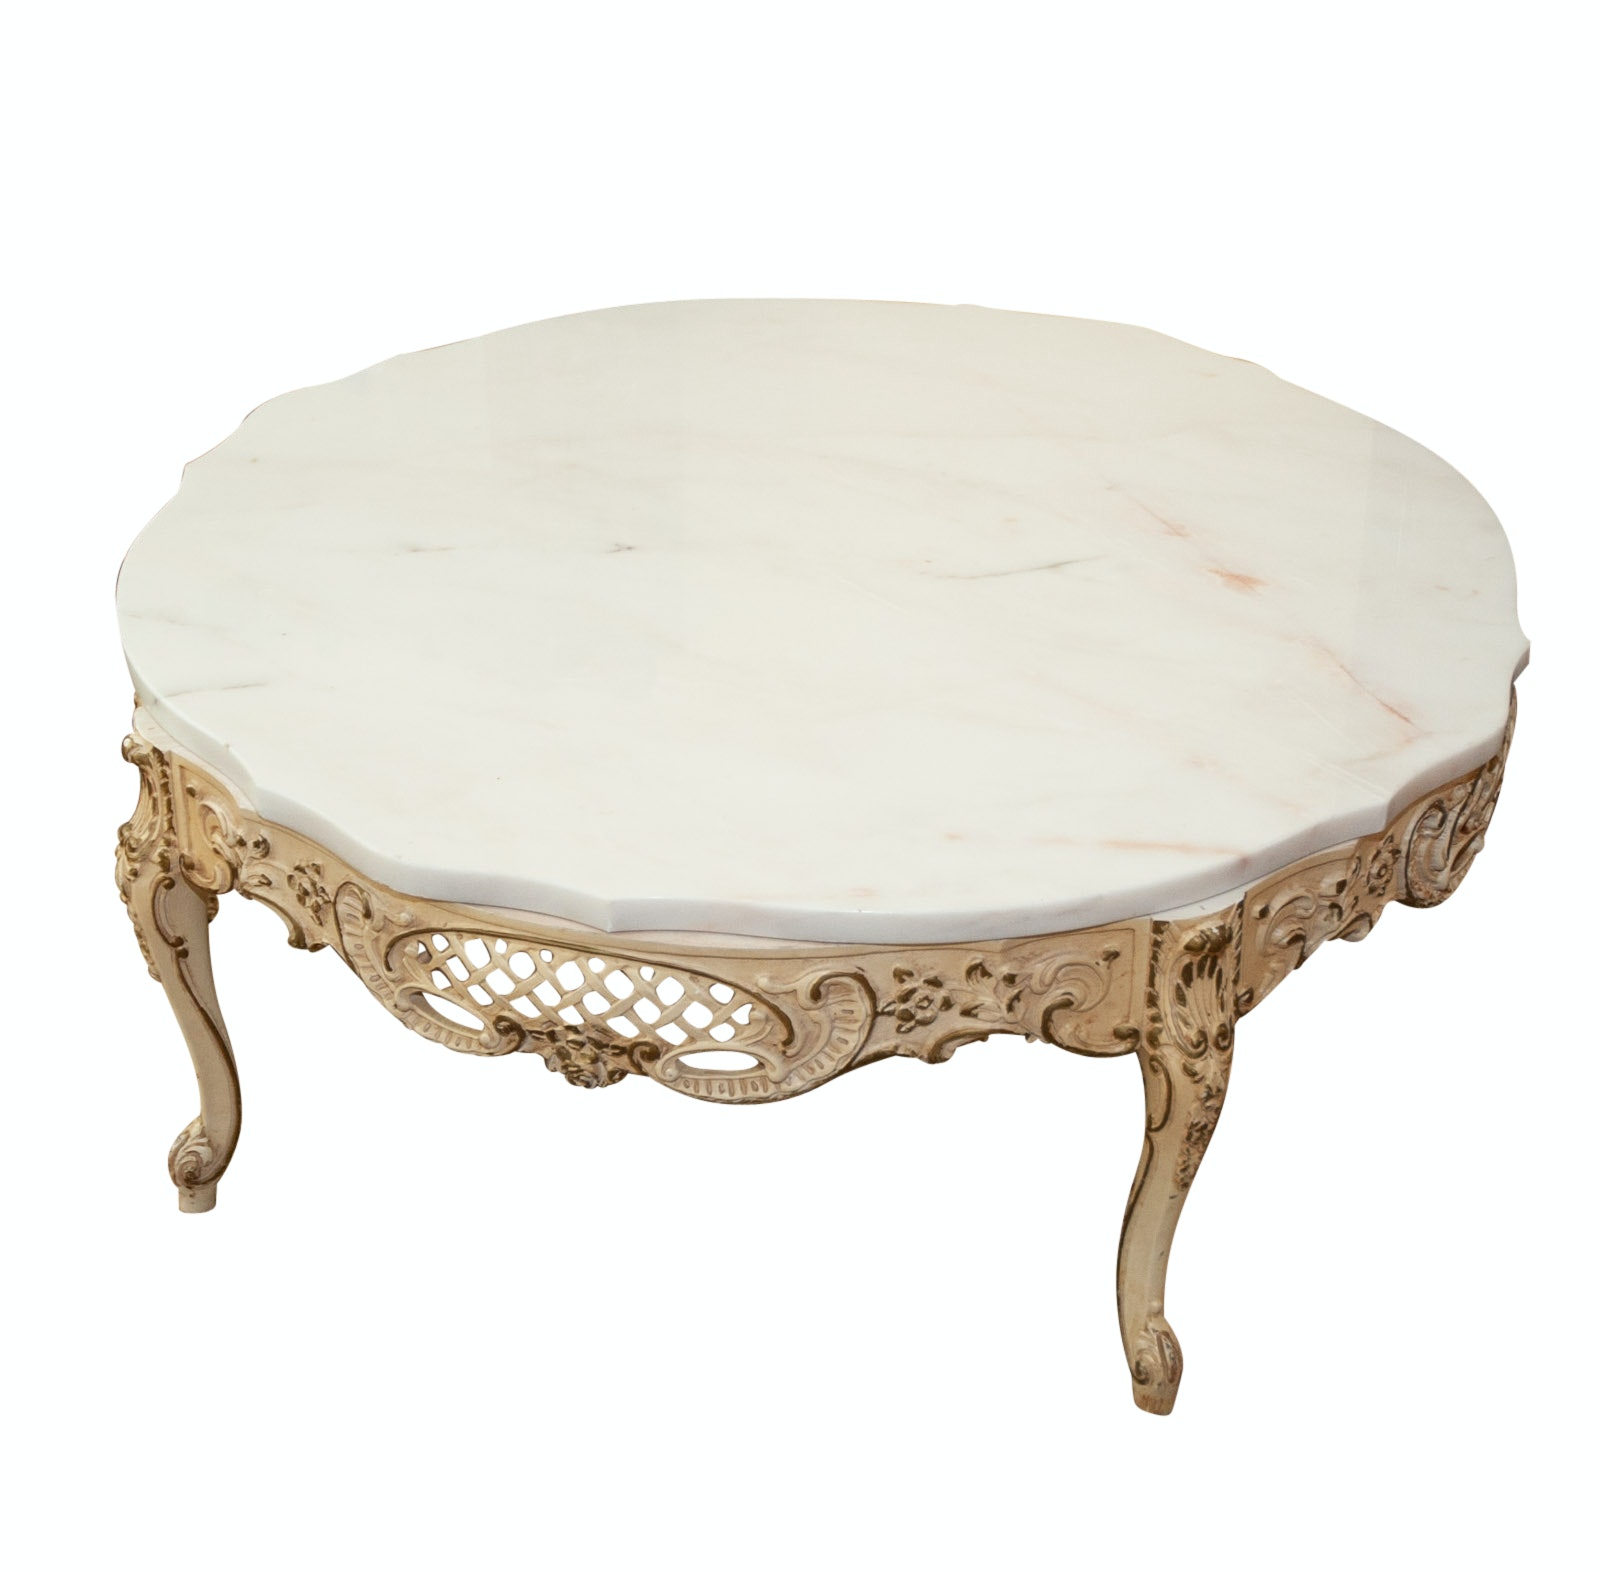 French Provincial Style Marble Coffee Table